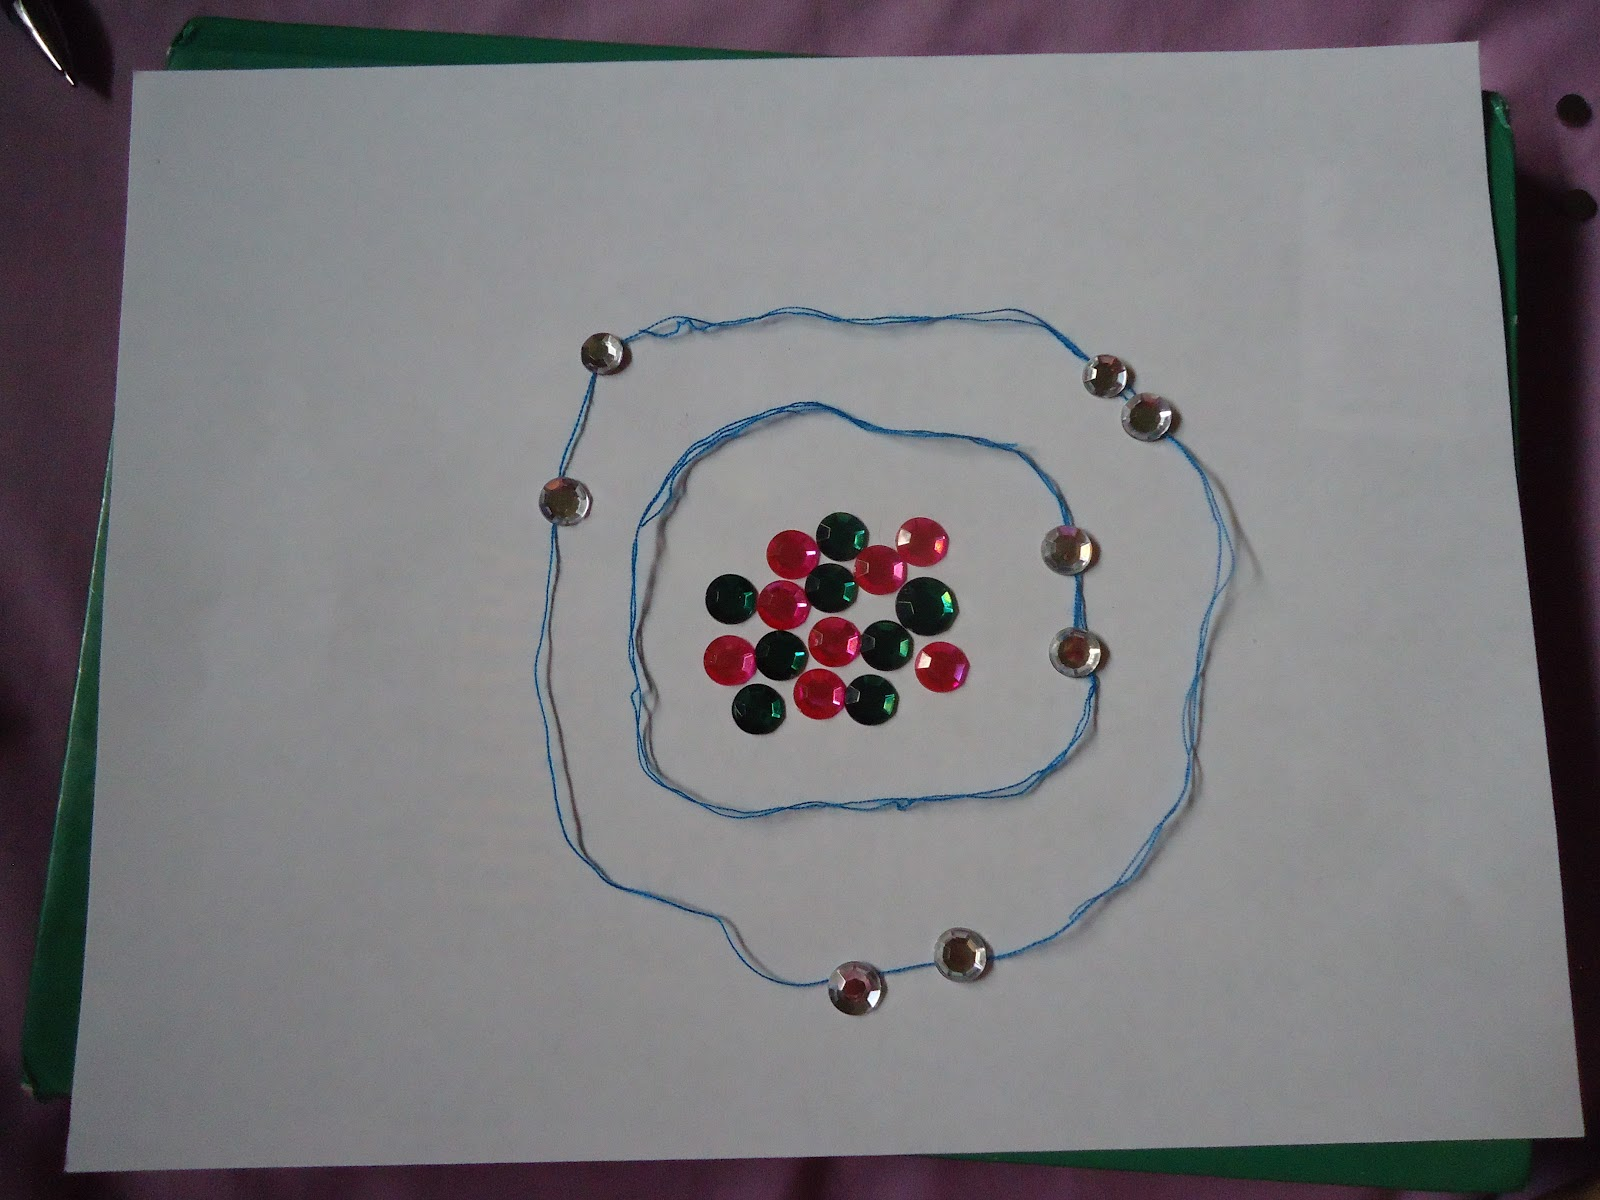 Chem 105 Activity 2 Atomic And Atomic Structure